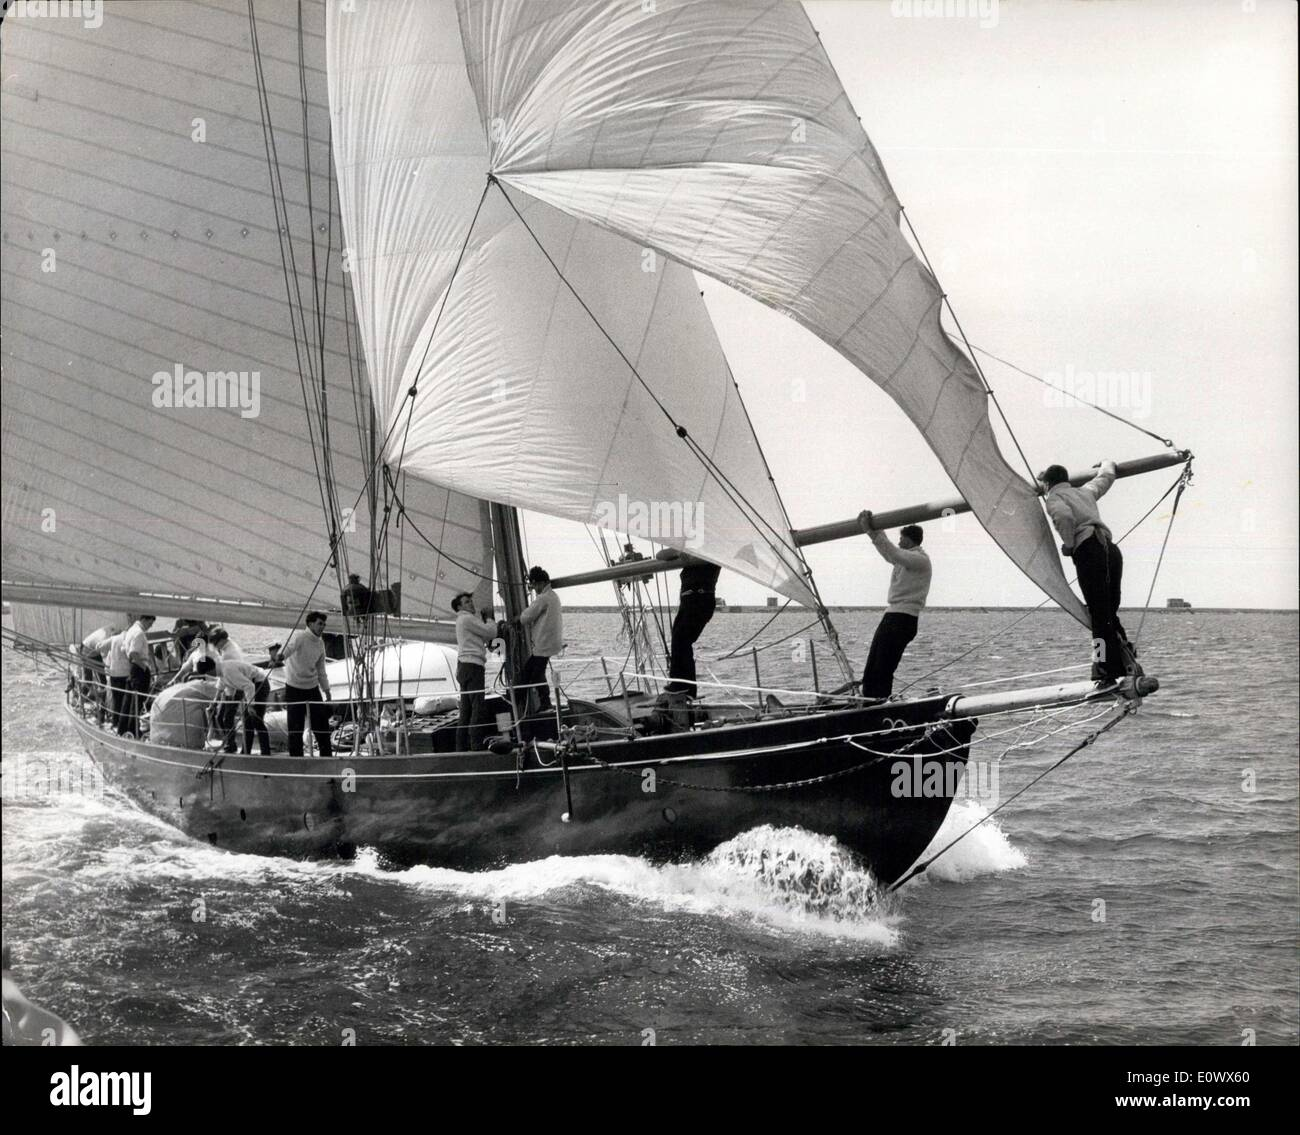 May 21, 1964 - British Yacht Prepares For ''Tall Ships'' Race - The 52 tom yawl Tawau, Crewed by Youngsters from Youth Organisations all over the Country will be Britain's Entry in the ''Tall Ships'' race starting on Sunday, May 24 from Plymouth to New York via Lisson and Bermuda - Photo Shows: Crew Members Hard at Work on the Tawau During Practice in Plymouth Sound. - Stock Image